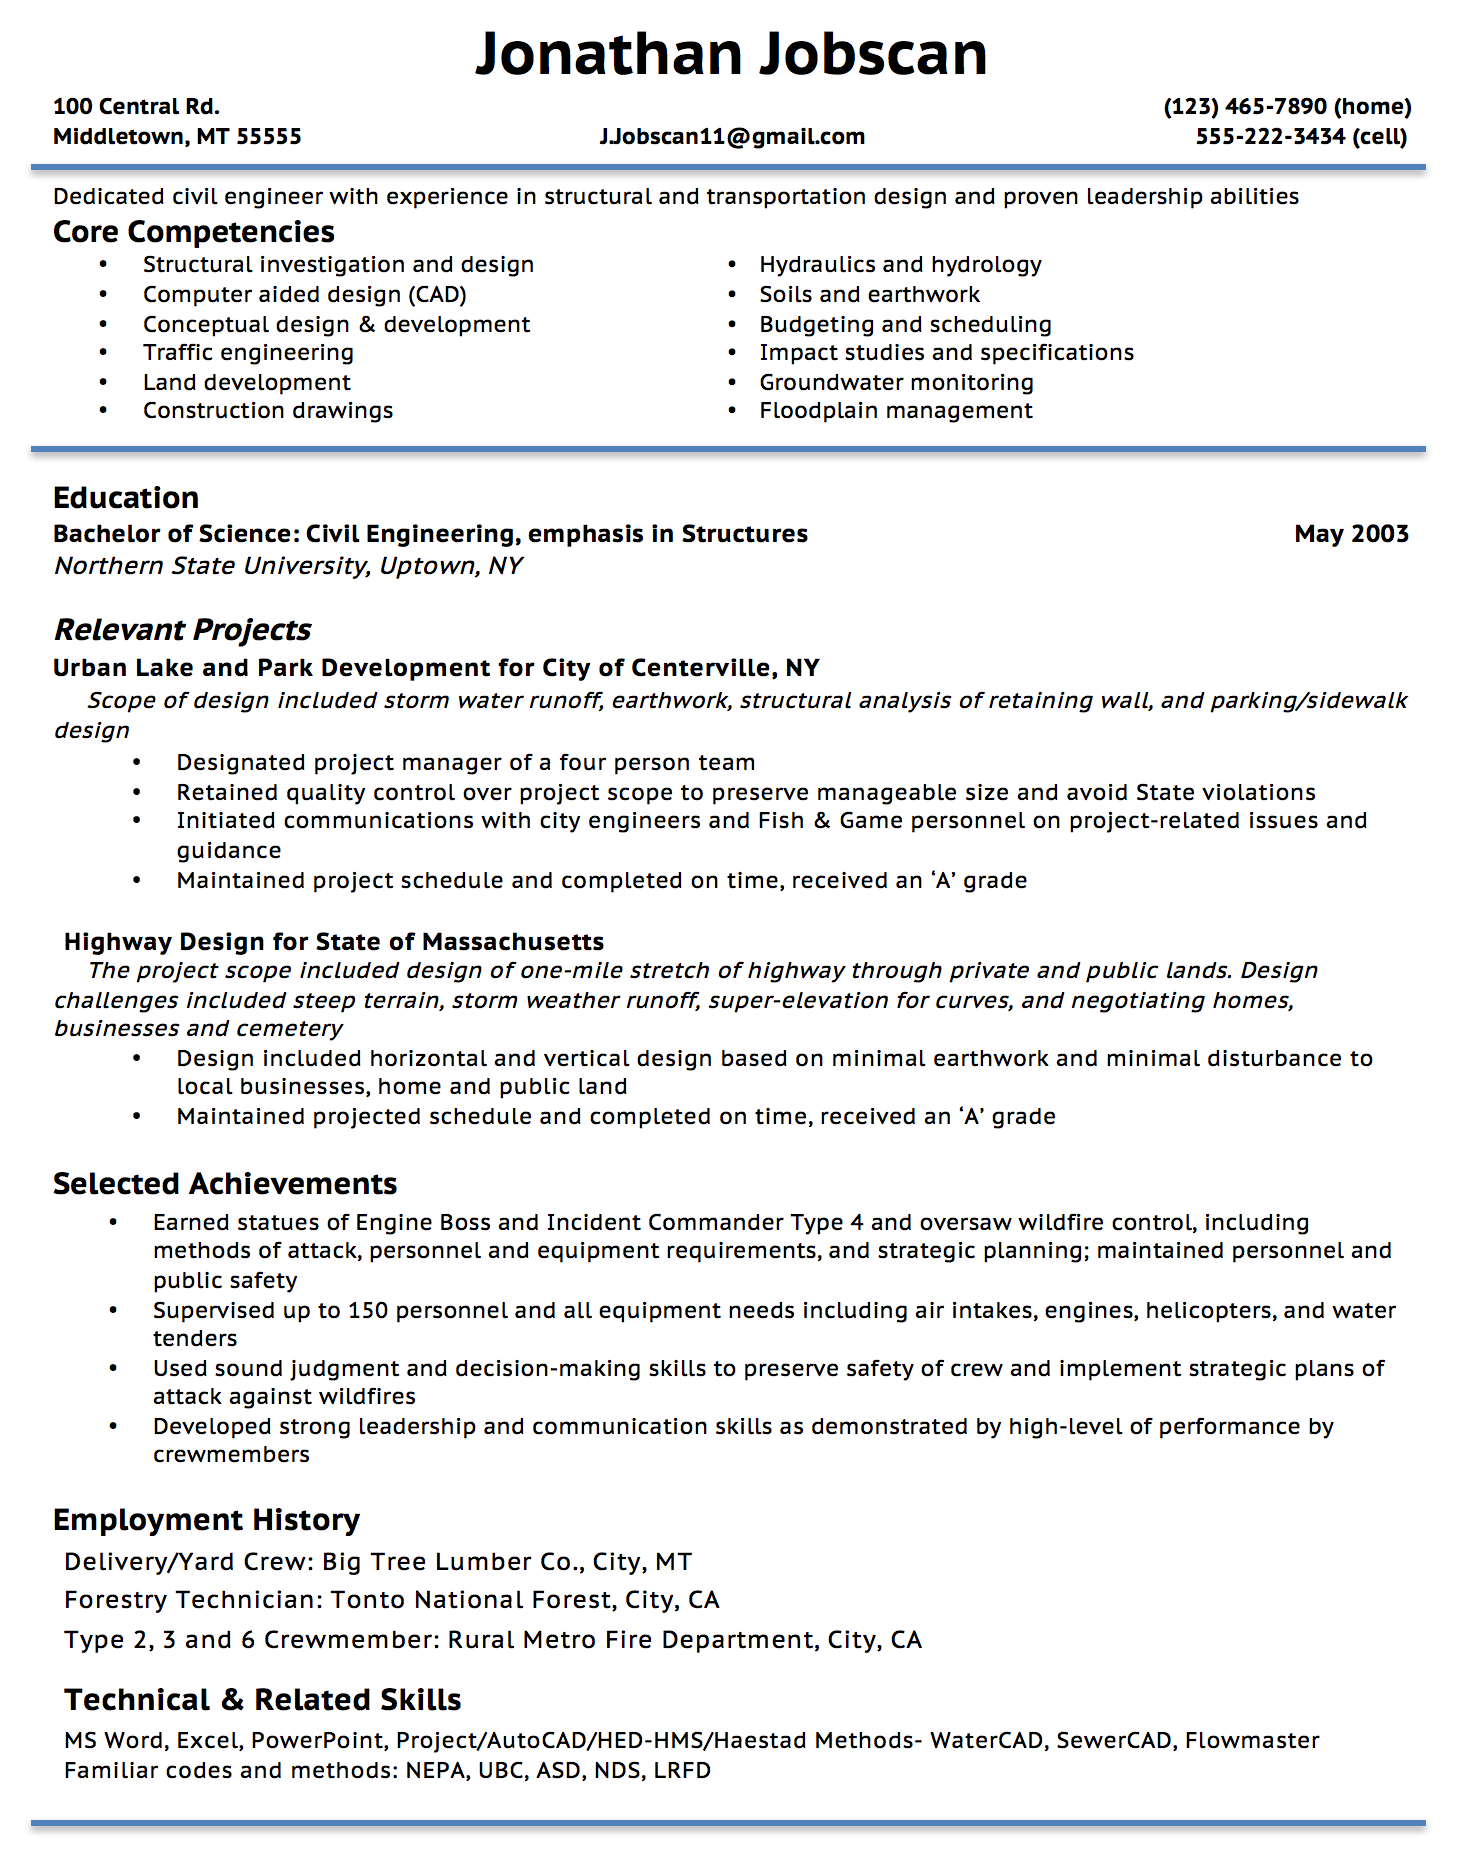 Opposenewapstandardsus  Wonderful Resume Writing Guide  Jobscan With Luxury Example Of A Functional Resume Format With Amazing High School Resume Objective Examples Also Resume For Older Workers In Addition Data Entry Skills Resume And Floral Designer Resume As Well As Hotel Night Auditor Resume Additionally Professional Resume Fonts From Jobscanco With Opposenewapstandardsus  Luxury Resume Writing Guide  Jobscan With Amazing Example Of A Functional Resume Format And Wonderful High School Resume Objective Examples Also Resume For Older Workers In Addition Data Entry Skills Resume From Jobscanco